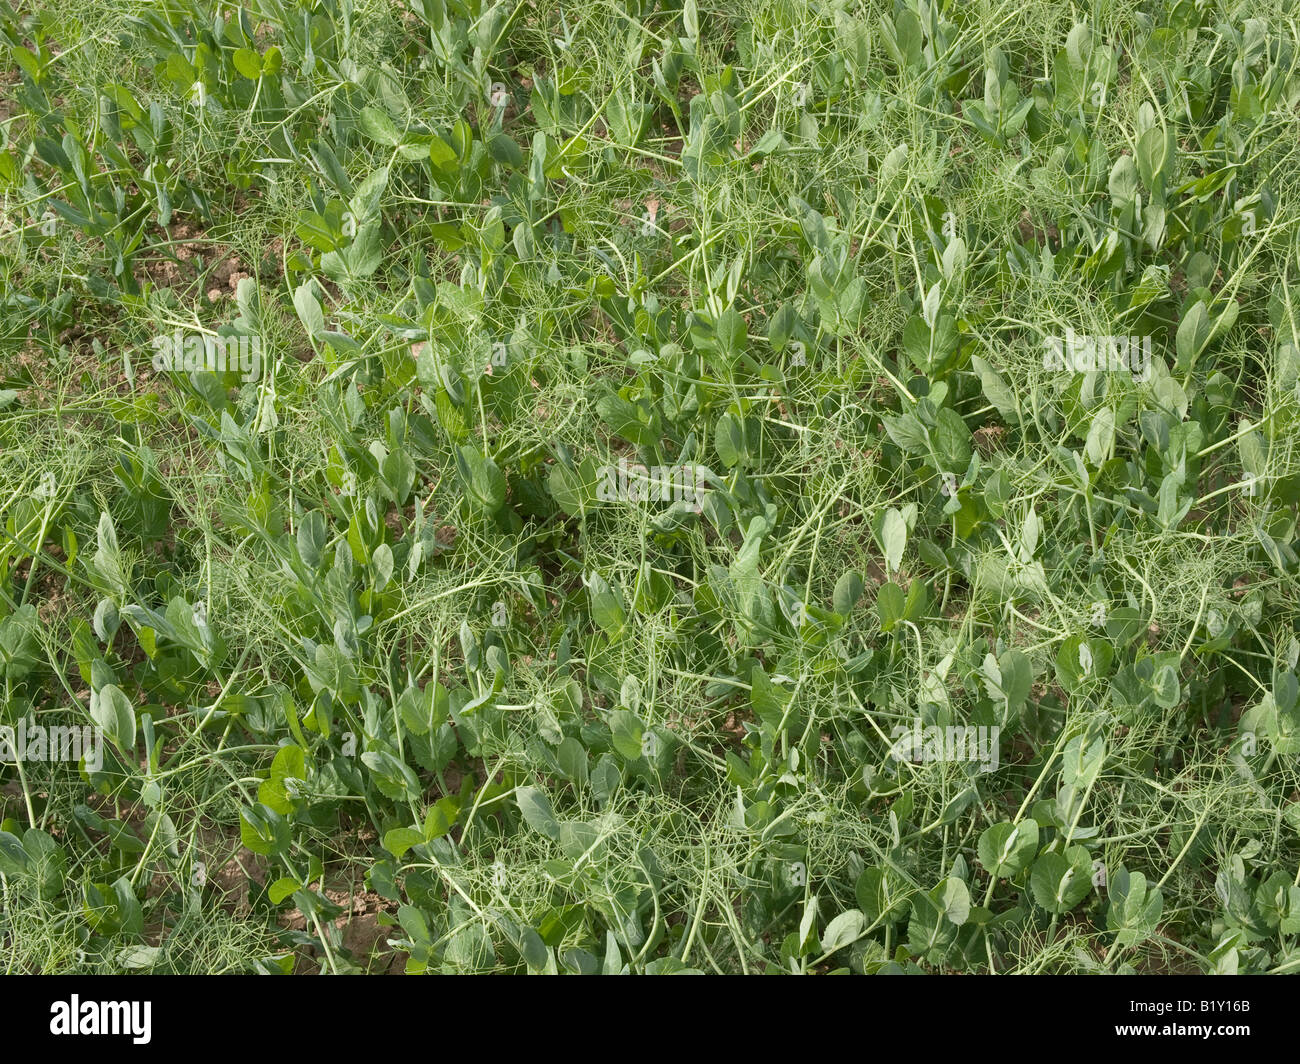 peas growing on a field fodder plant Stock Photo